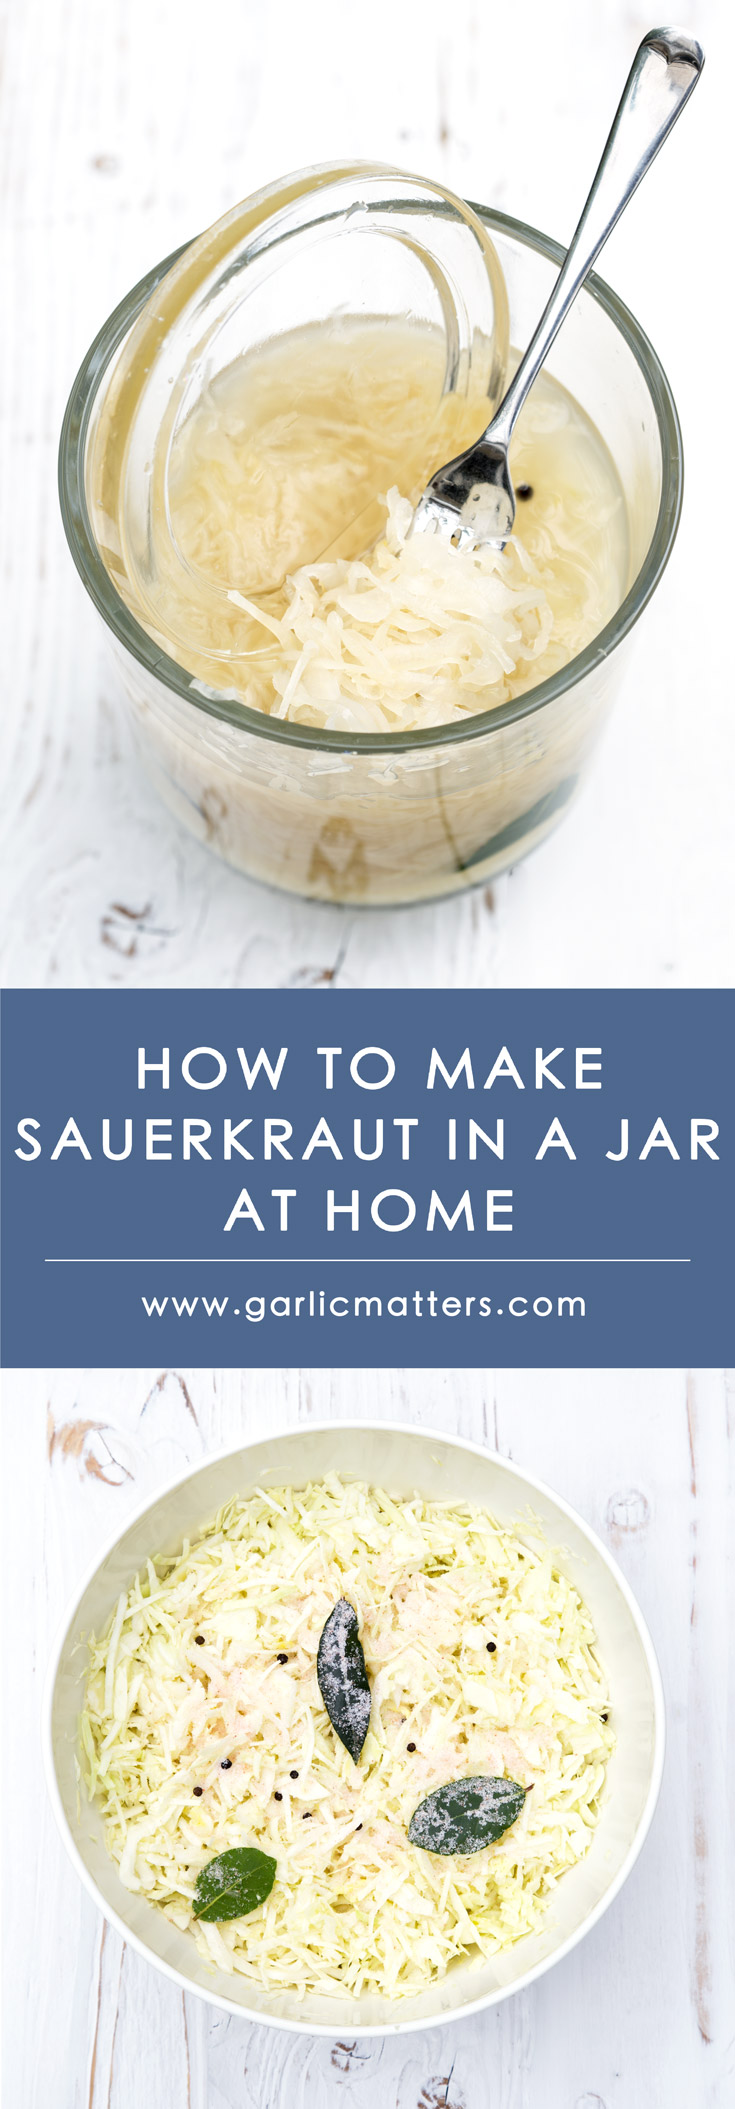 Learn How To Make Homemade Sauerkraut in a Jar and enjoy its amazing flavour as well as health benefits. All you need is cabbage and salt! Easy recipe and no special skills or equipment required. The fermented sauerkraut stores great for months